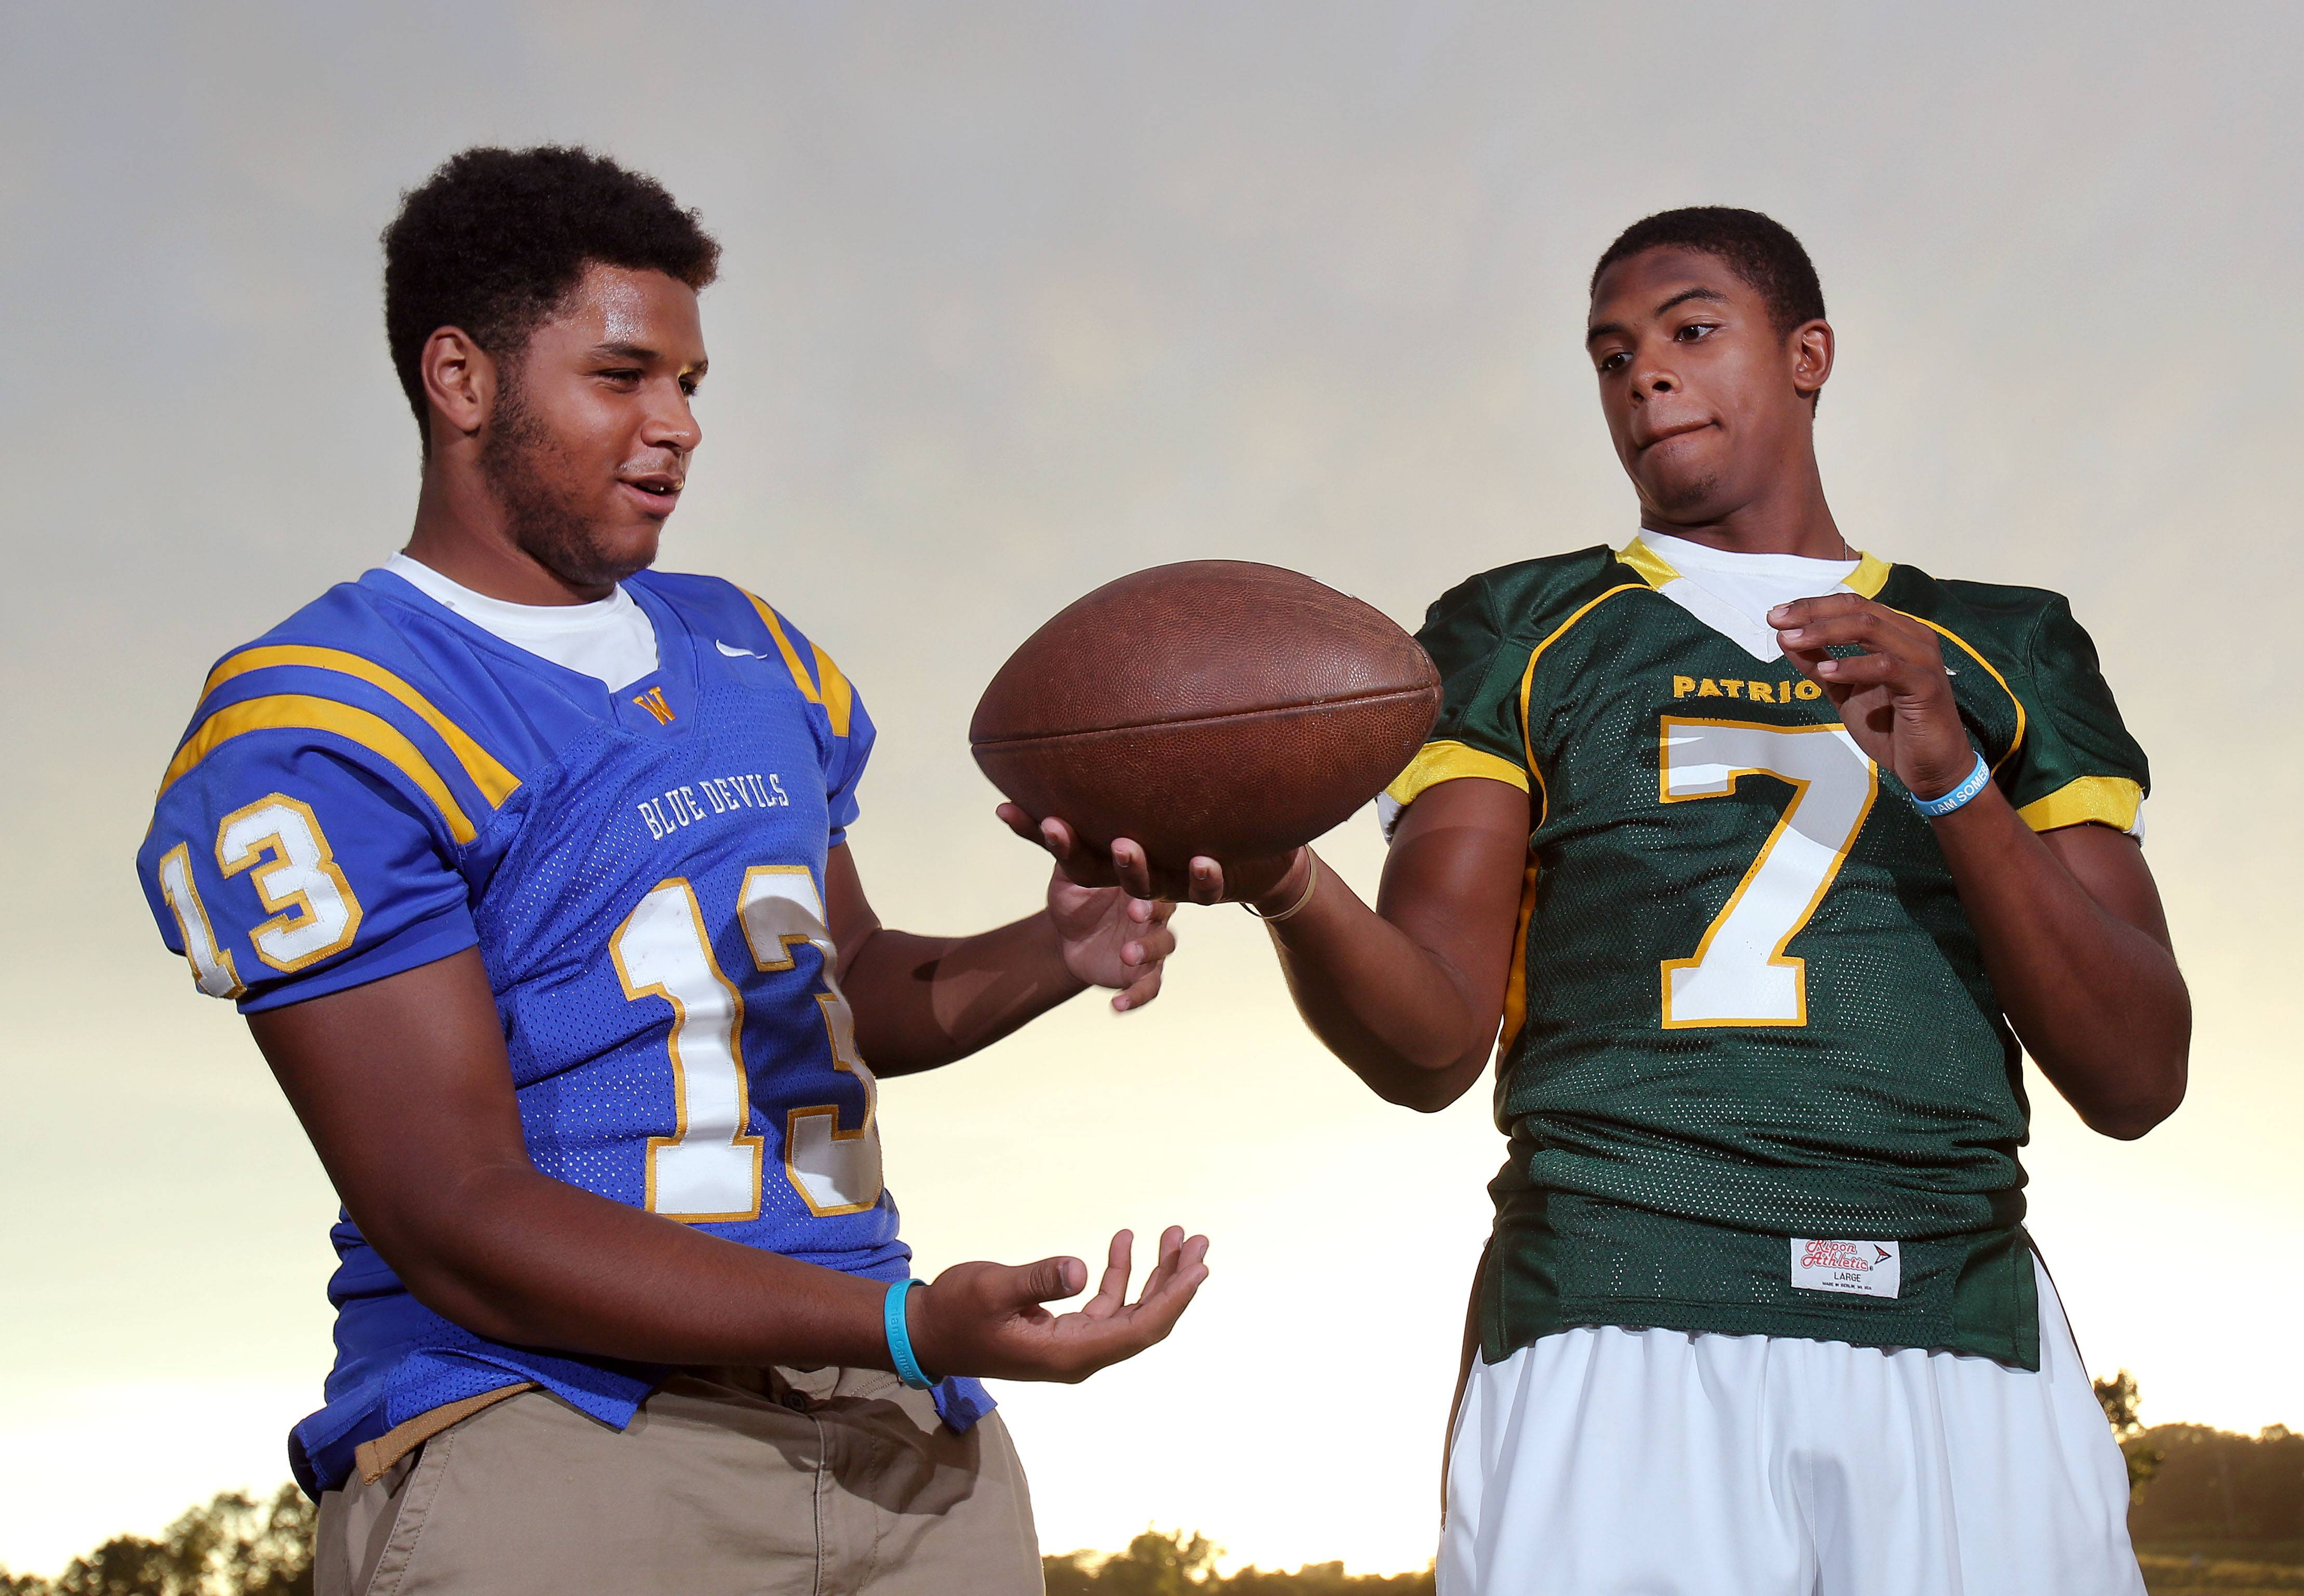 Senior wide receivers Caleb Reams of Warren, left, and Cameron Green of Stevenson are friendly rivals. They're also and the kind of players that are helping even Lake County high school football become centered around the passing game.